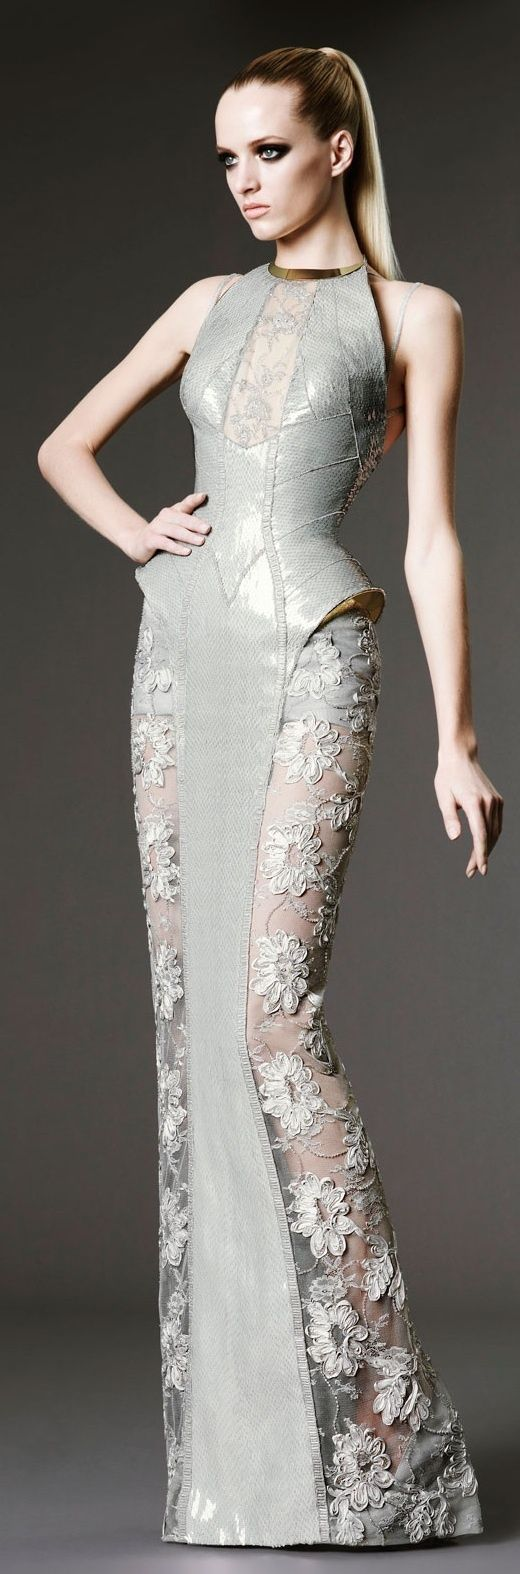 Versace wedding dress  evening wear  couture  embroidery  wedding gownDiscover more at